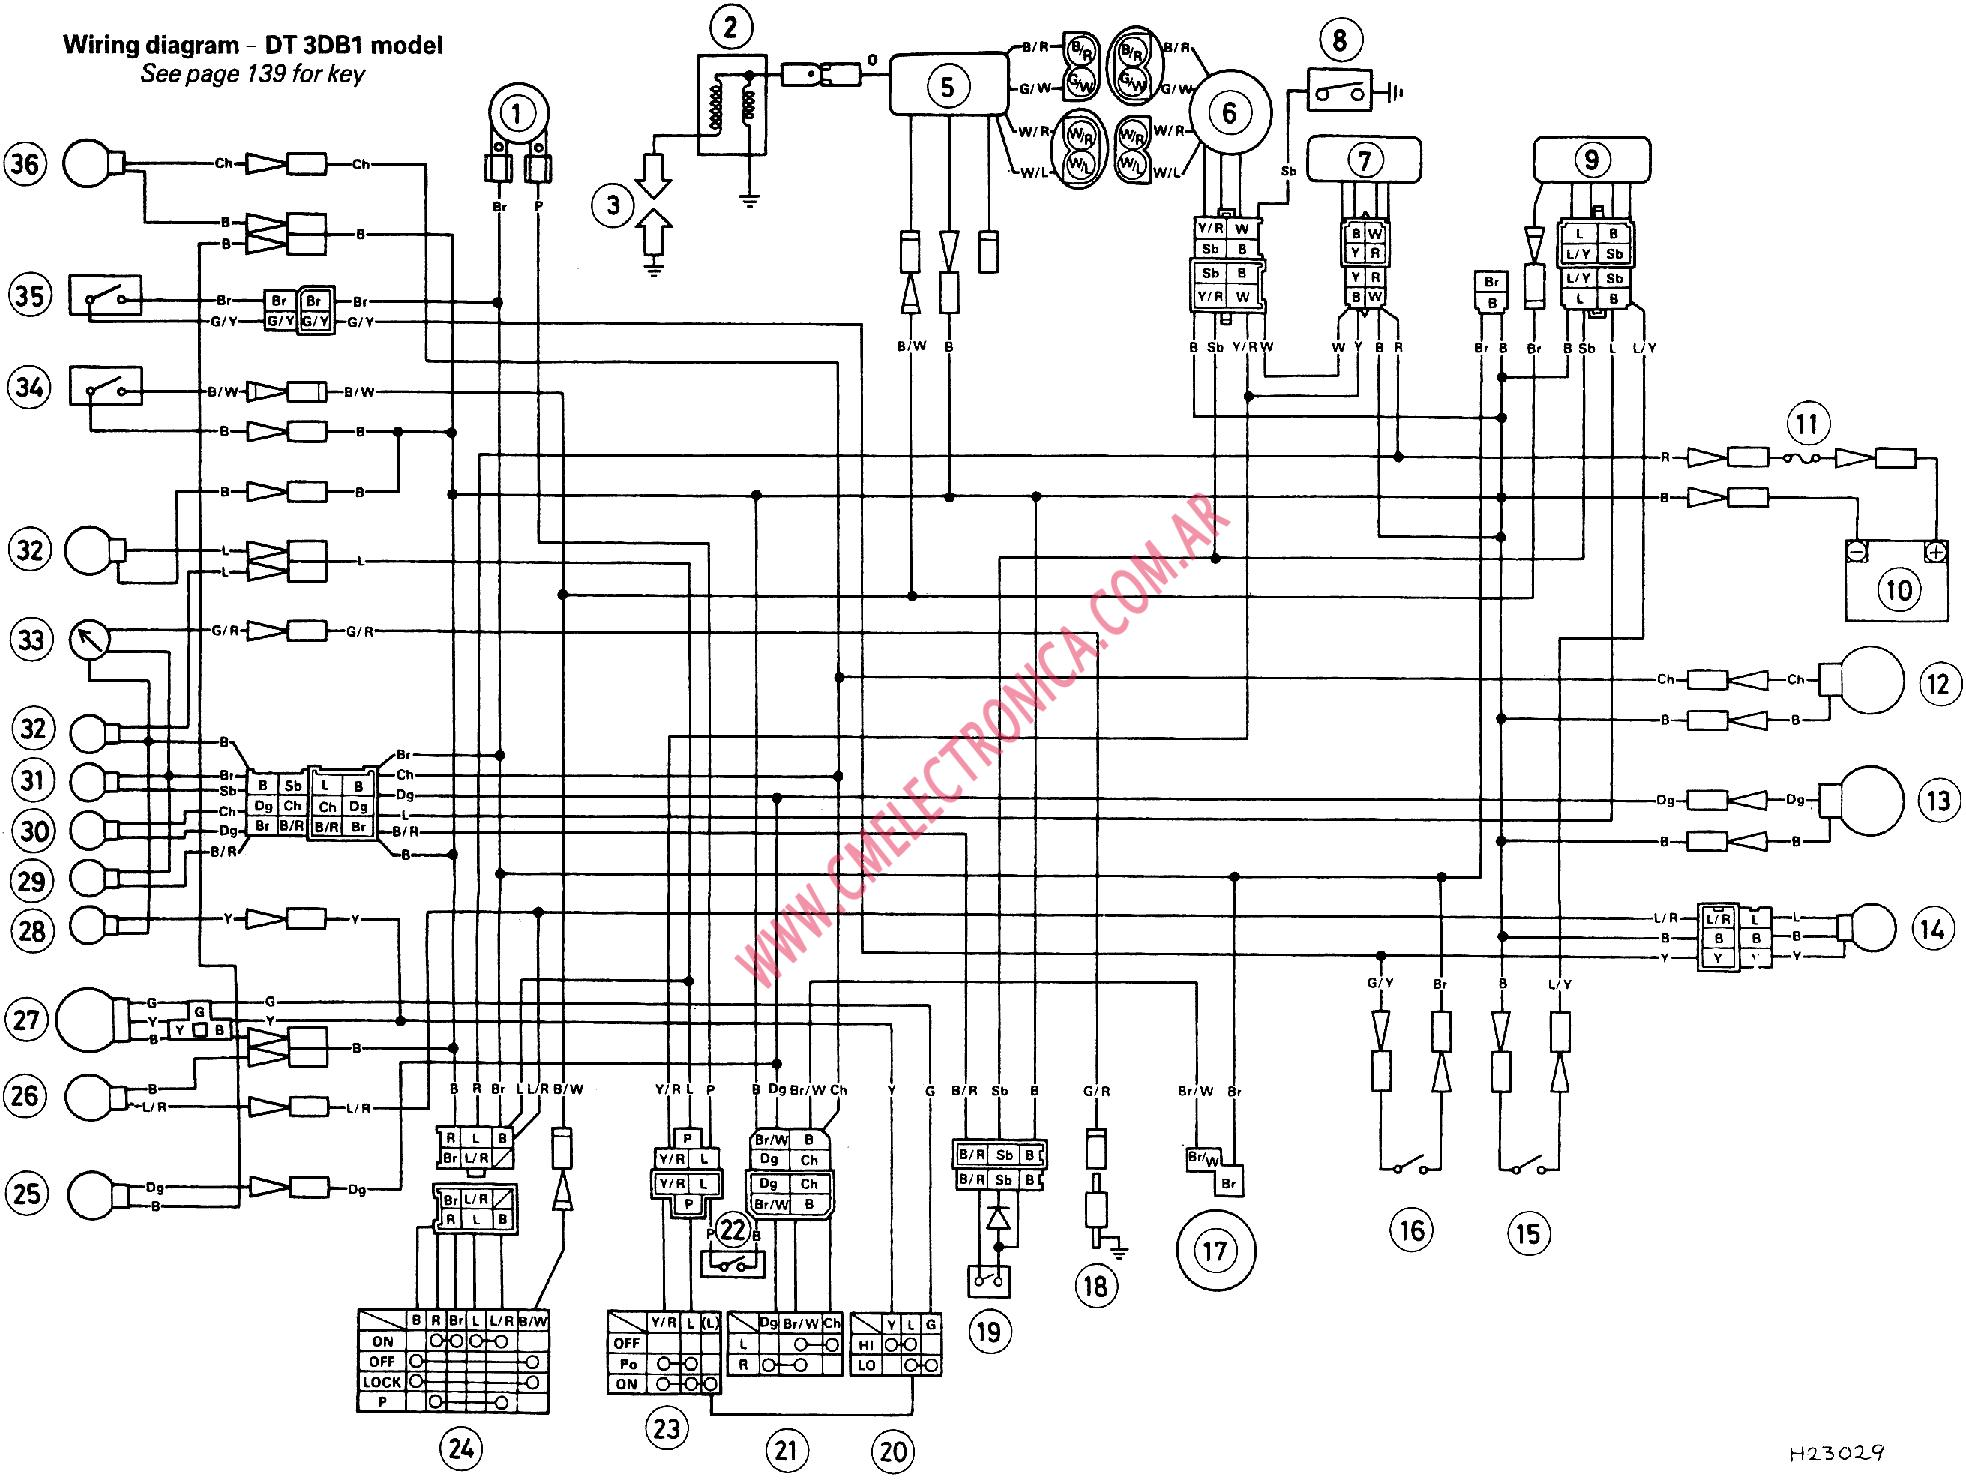 1980 Xs650 Wiring Diagram Layout Diagrams 81 Suzuki 650 1979 Yamaha Gt80 Xt350 Simplified Problems